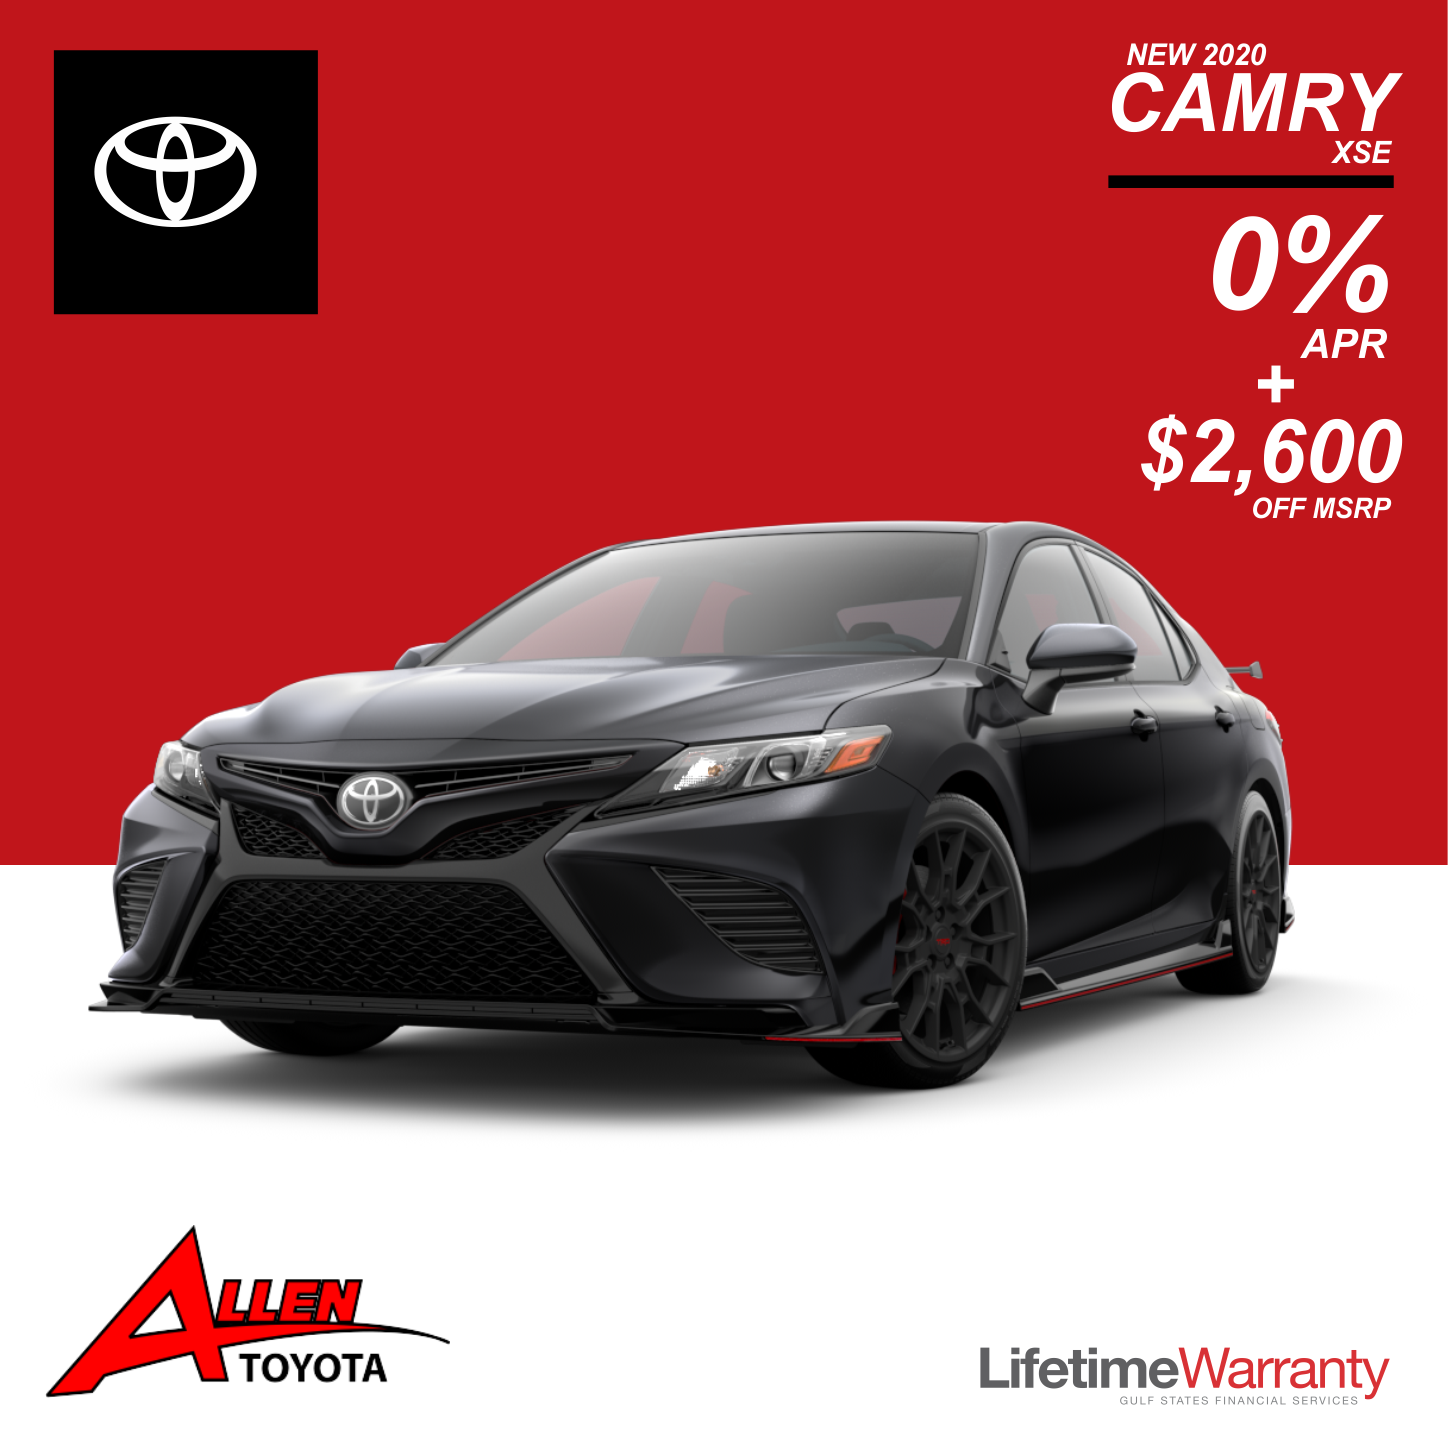 New 2020 Camry XSE Save $2,600 Plus 0%